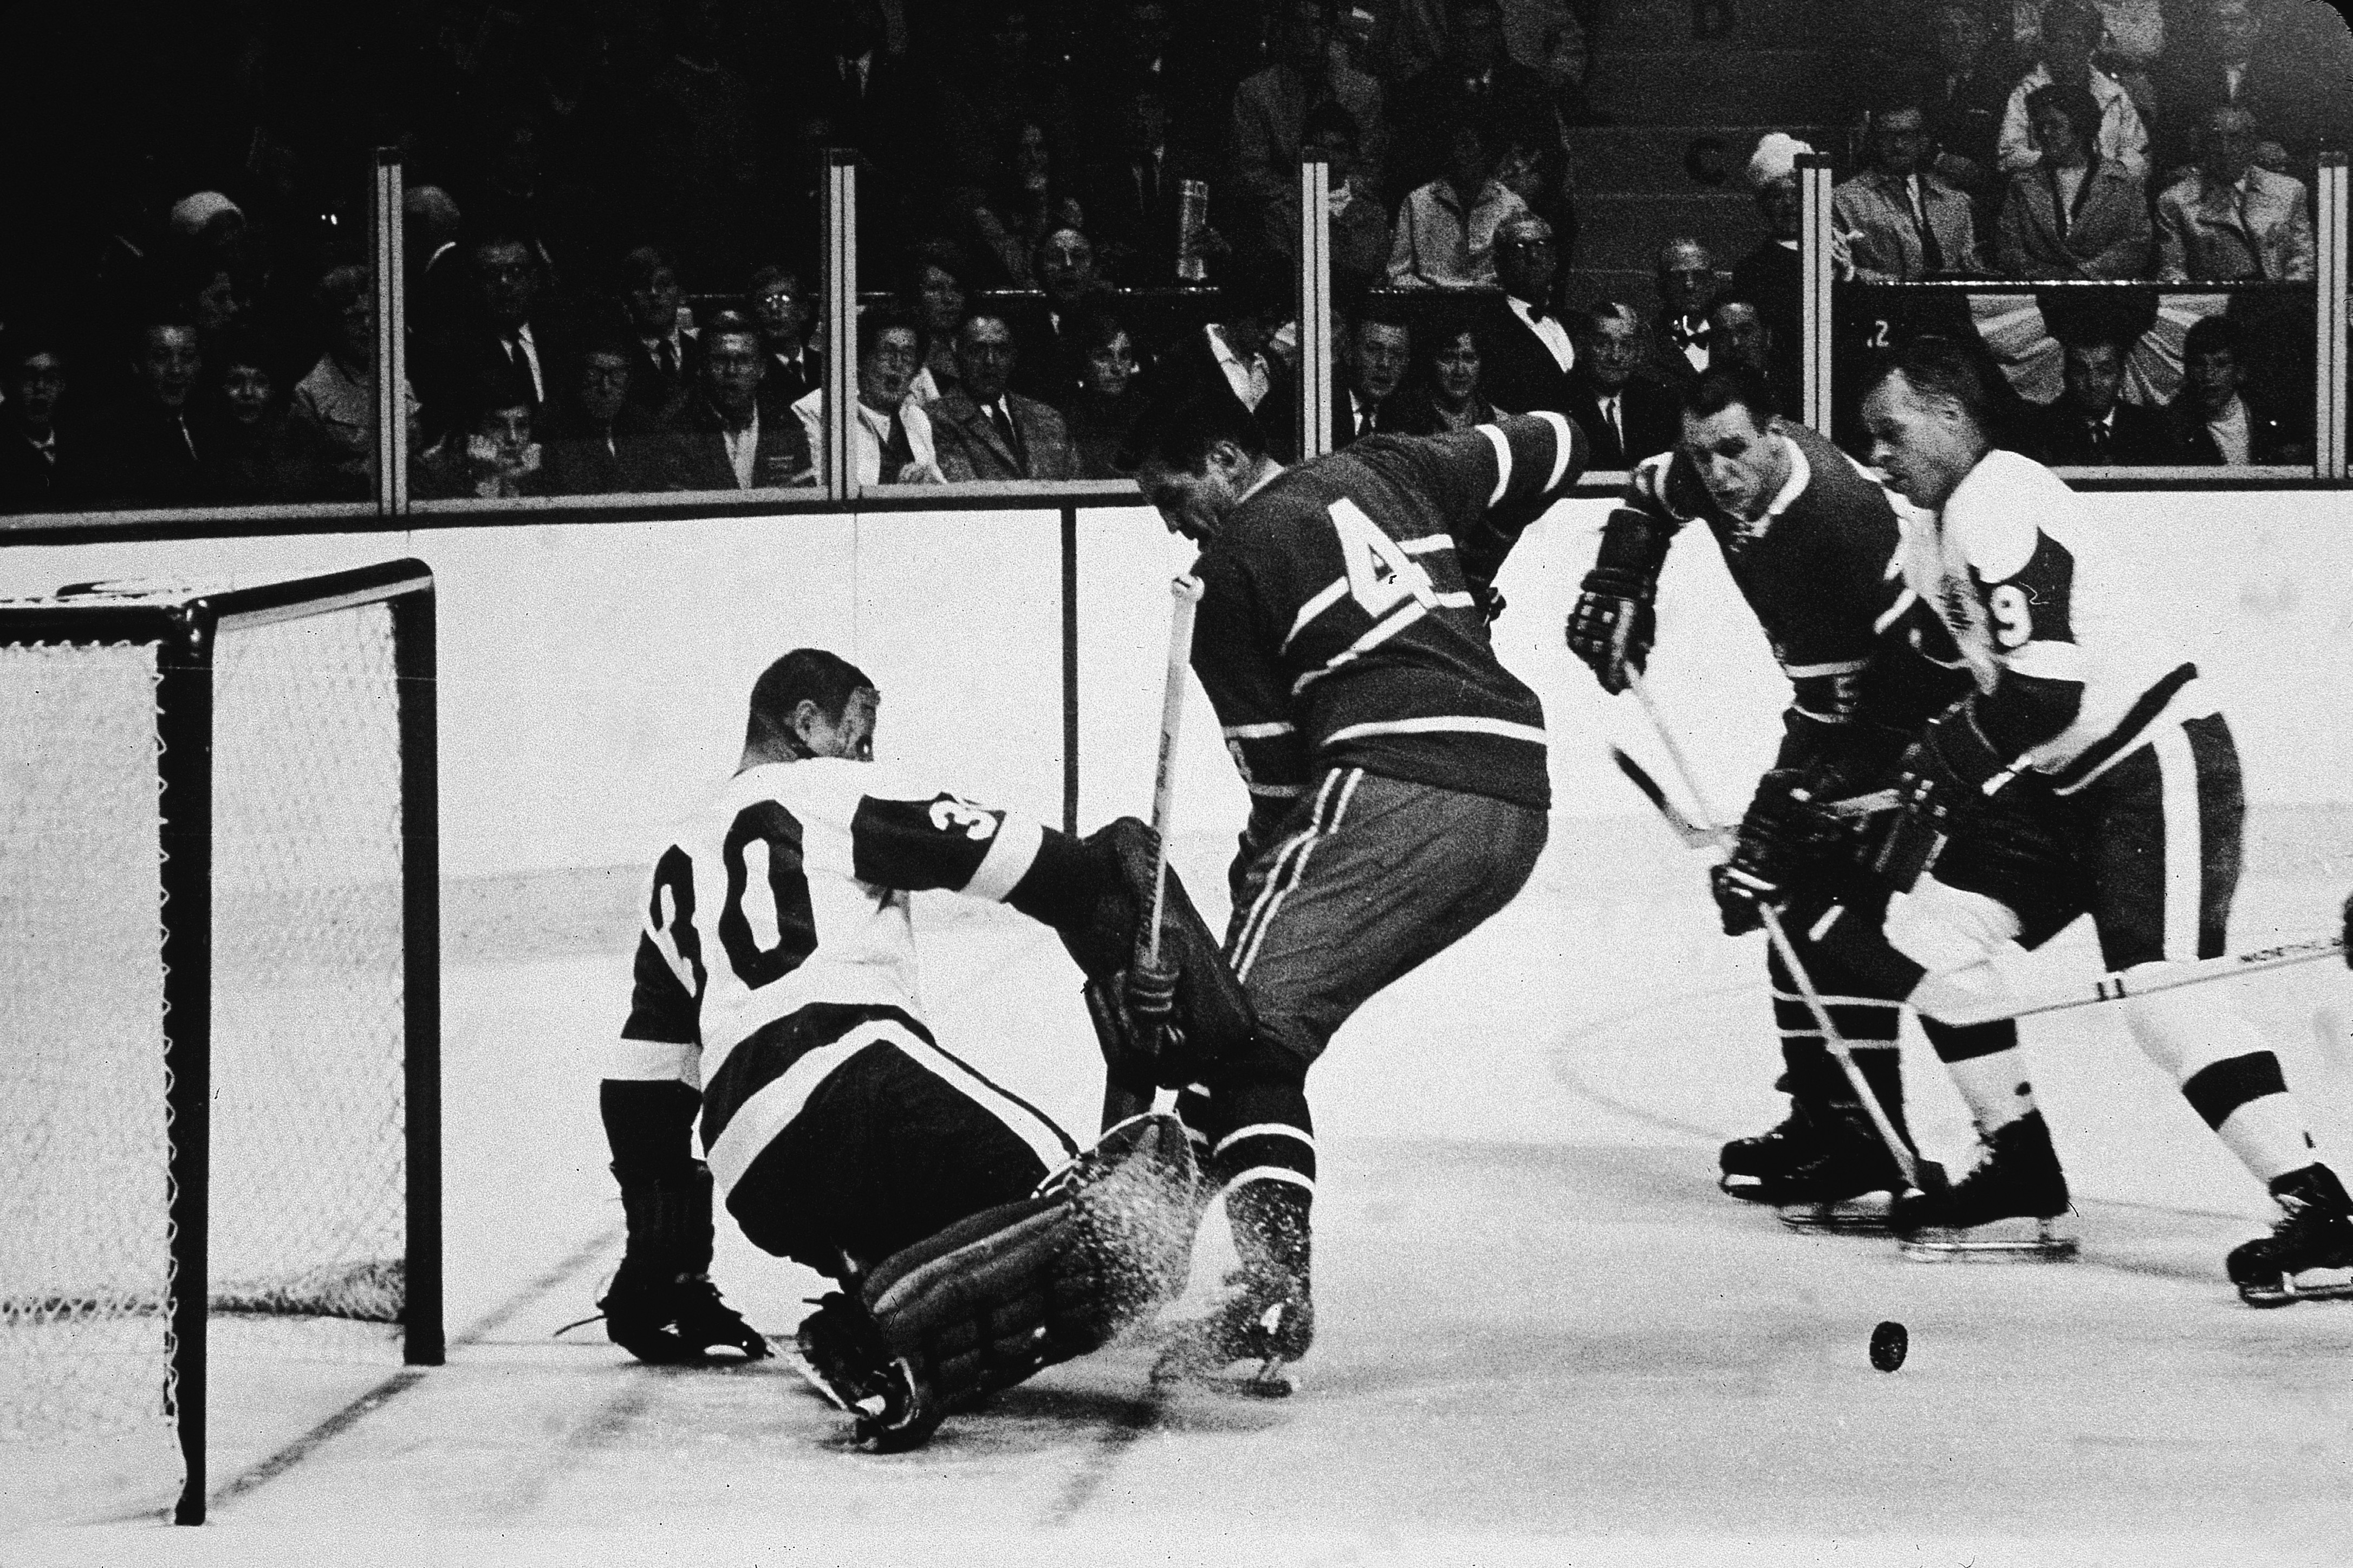 MONTREAL, QC - NOVEMBER 8: Goalie Terry Sawchuk #30 of the Detroit Red Wings makes the save on the shot by Jean Beliveau #4 of the Montreal Canadiens as Gordie Howe #9 of the Red Wings watches on November 8, 1968 at the Montreal Forum in Montreal, Quebec, Canada. (Photo by Hulton Archive/Getty Images)